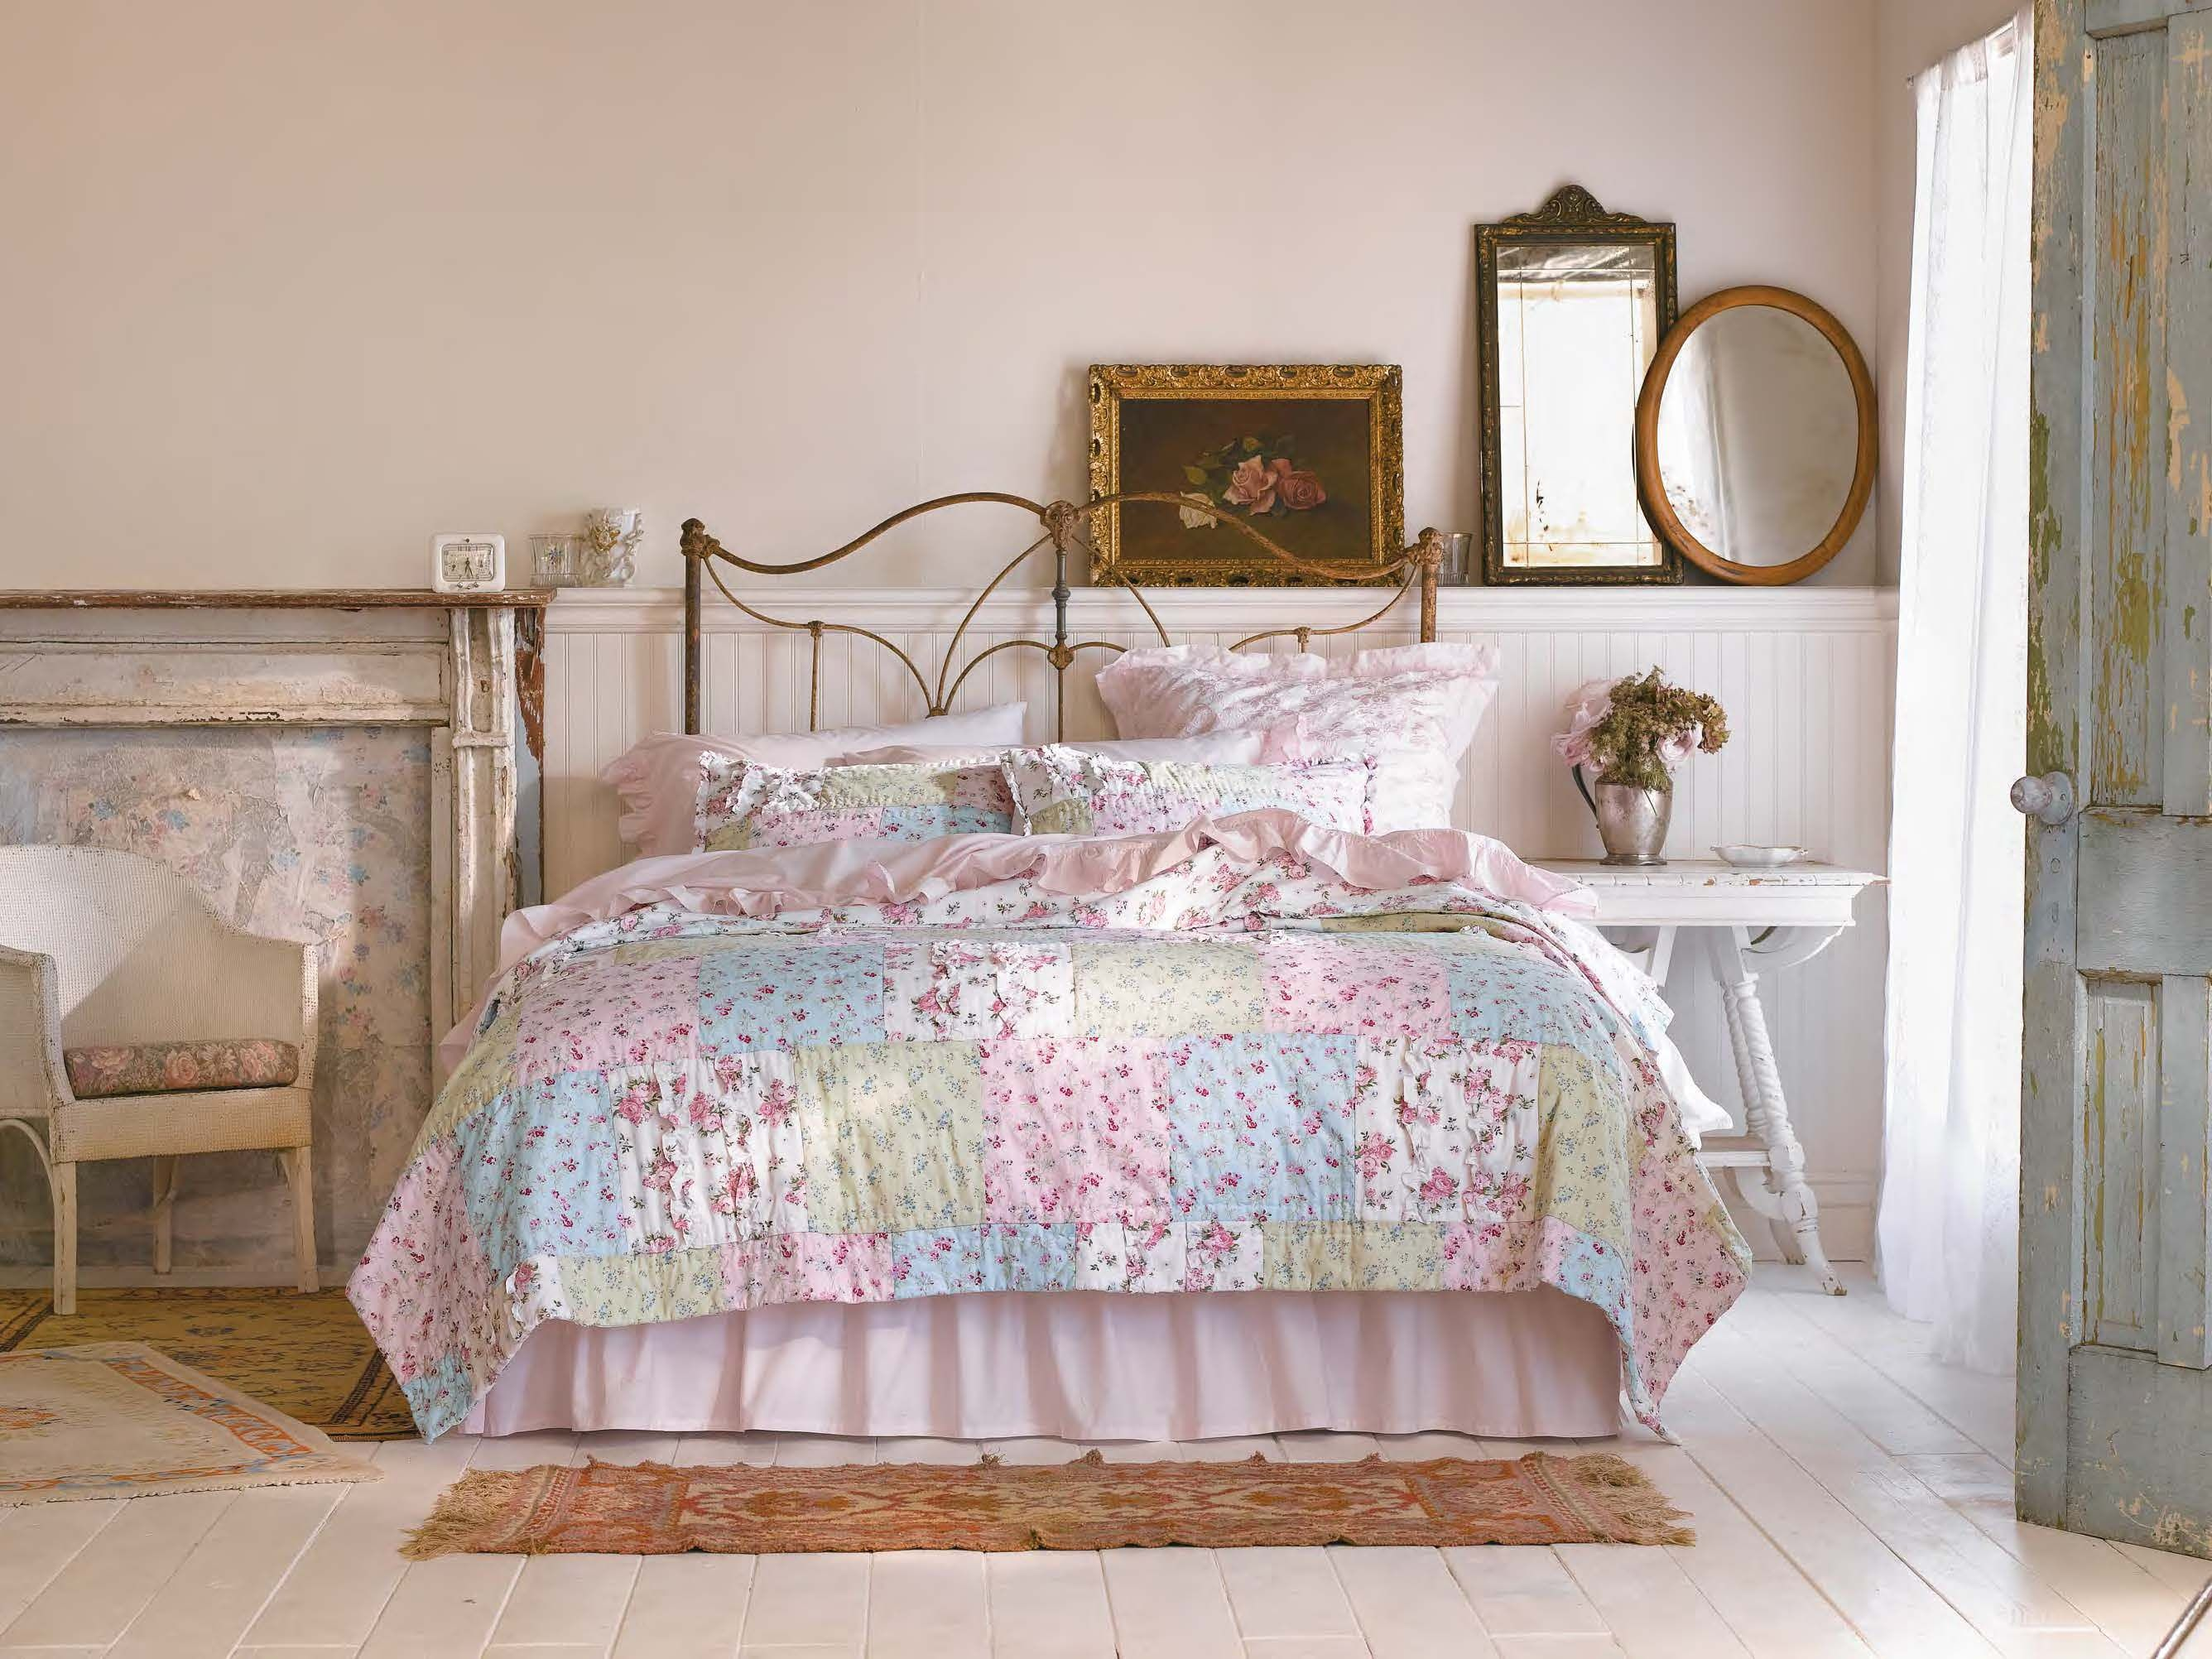 Introducing our newest quilt the Simply Shabby Chic Ditsy Patchwork